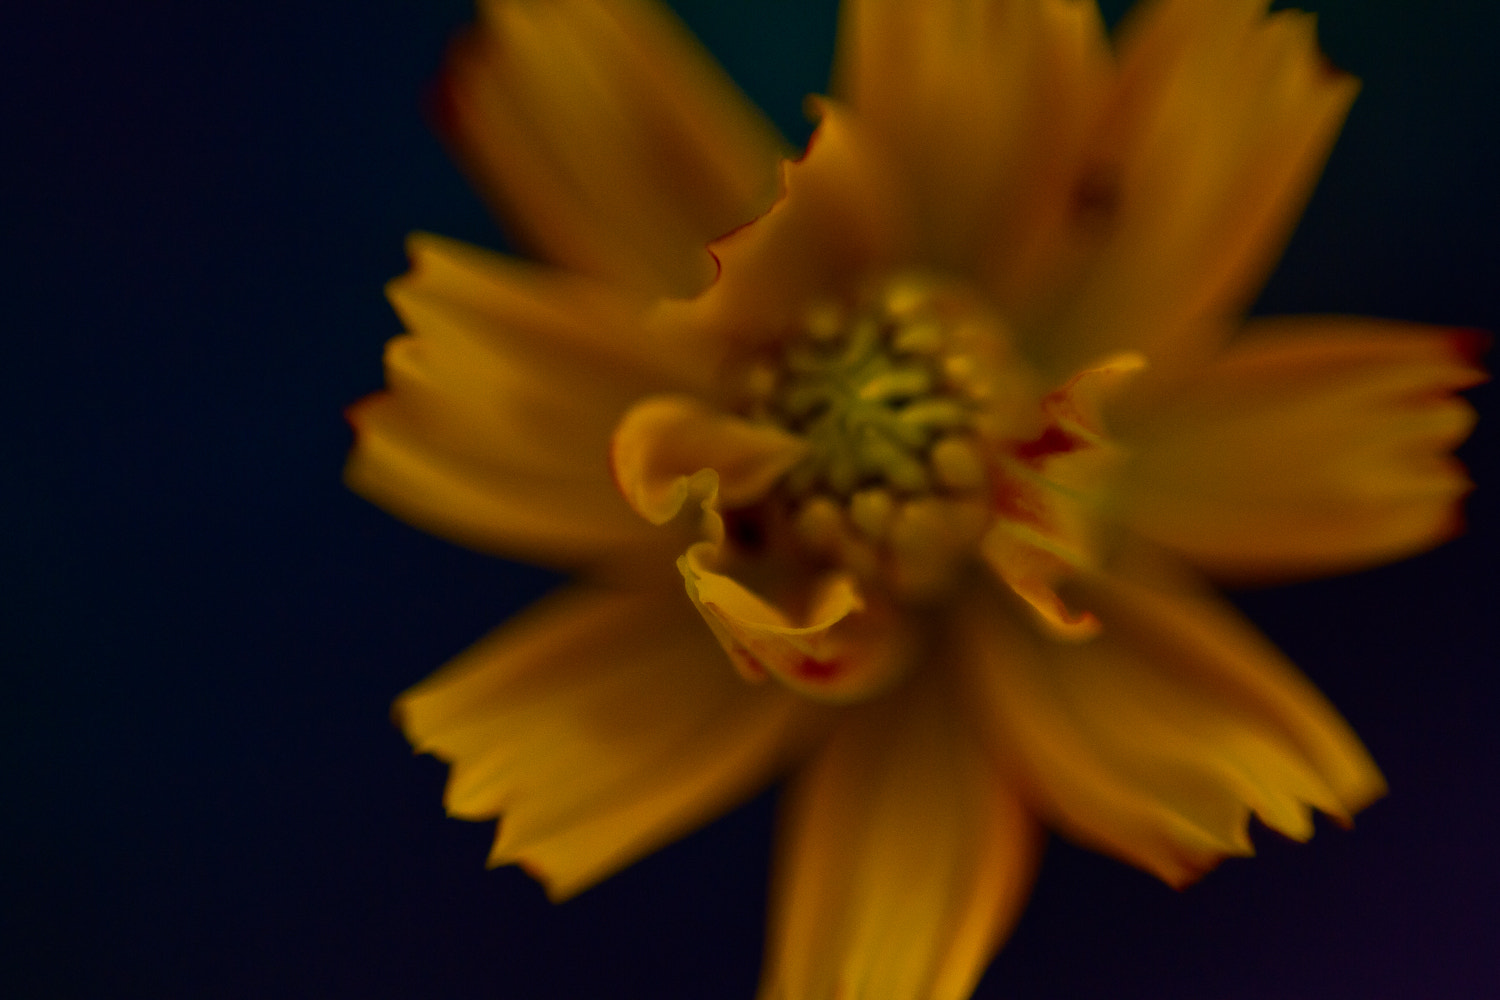 Photograph on the verge by Lotus Carroll on 500px